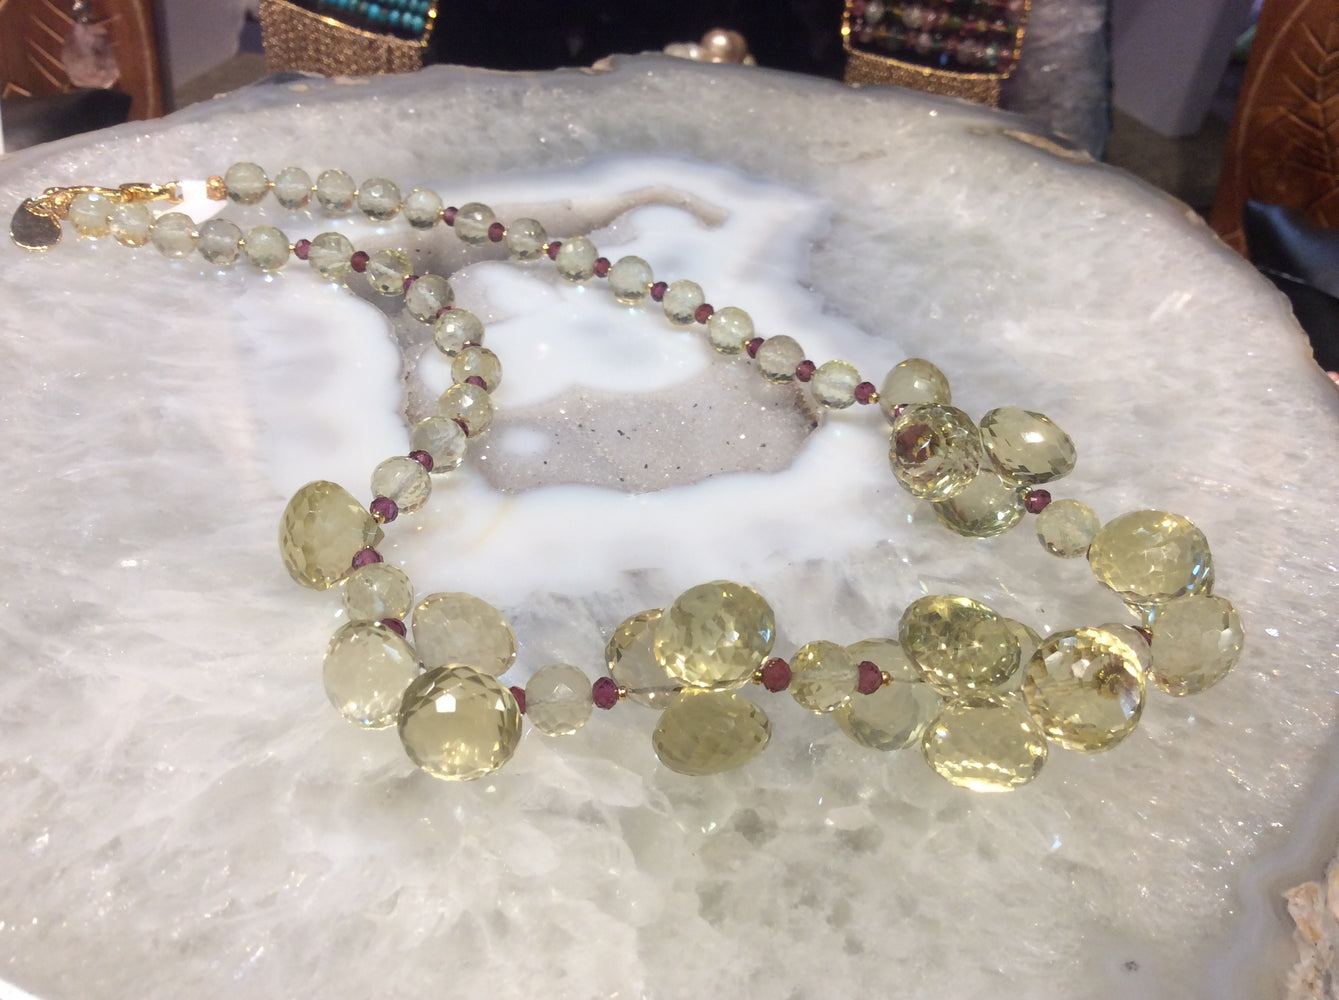 Lemon quartz & garnet faceted gemstone necklace  stunning!!!